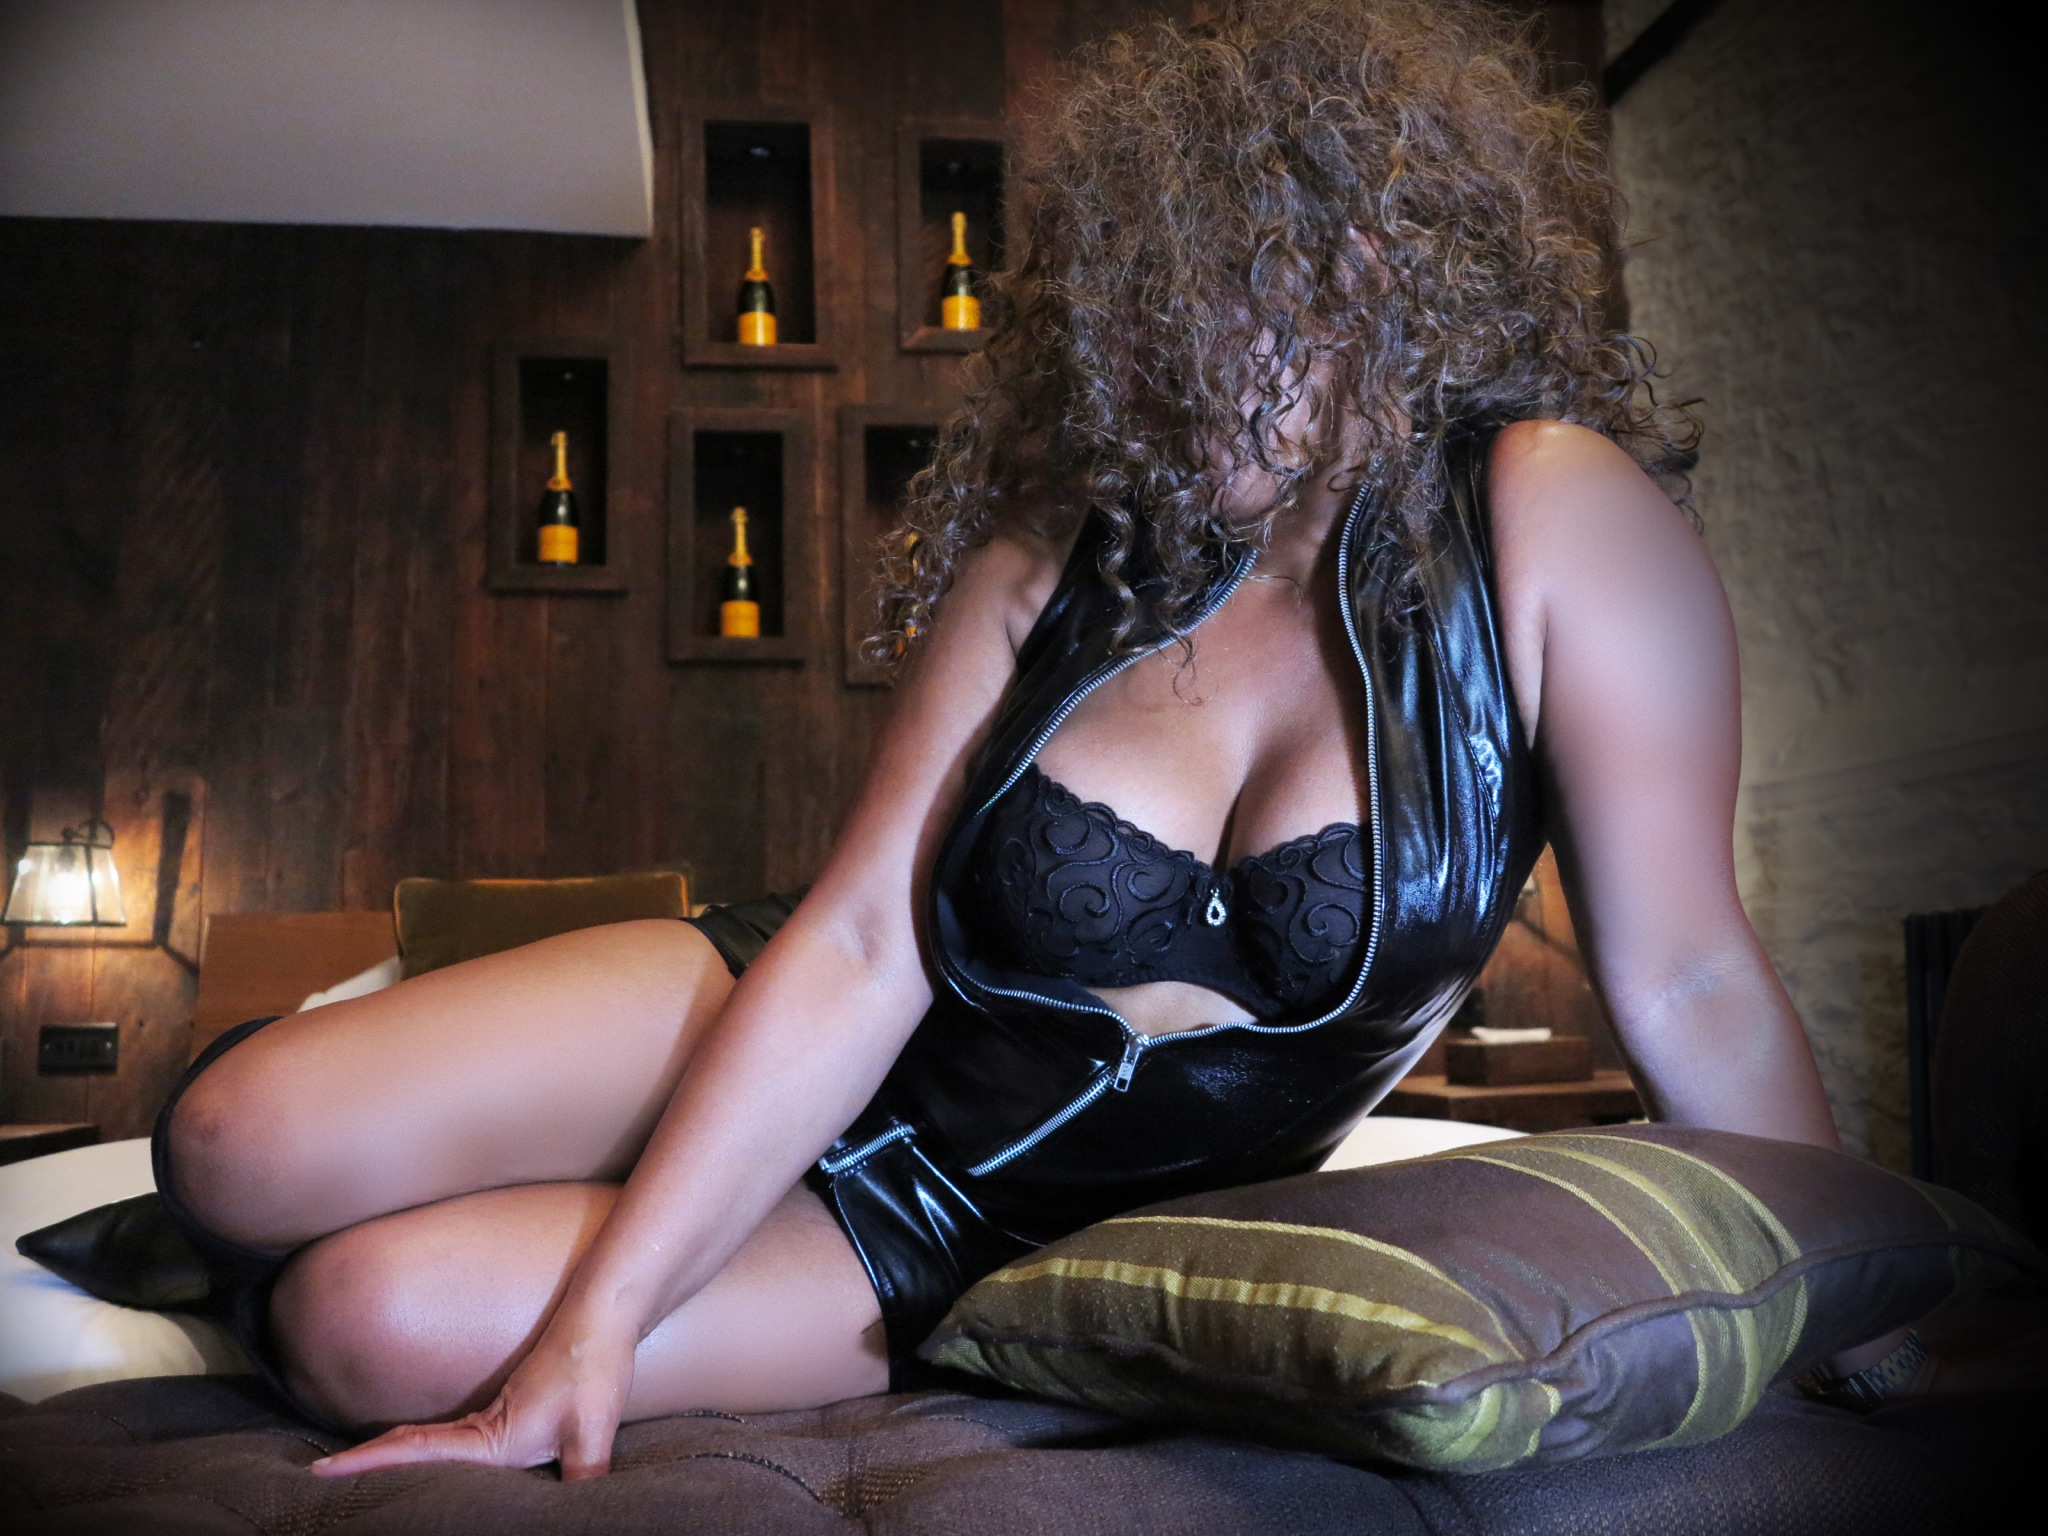 rabuda black escorts bristol